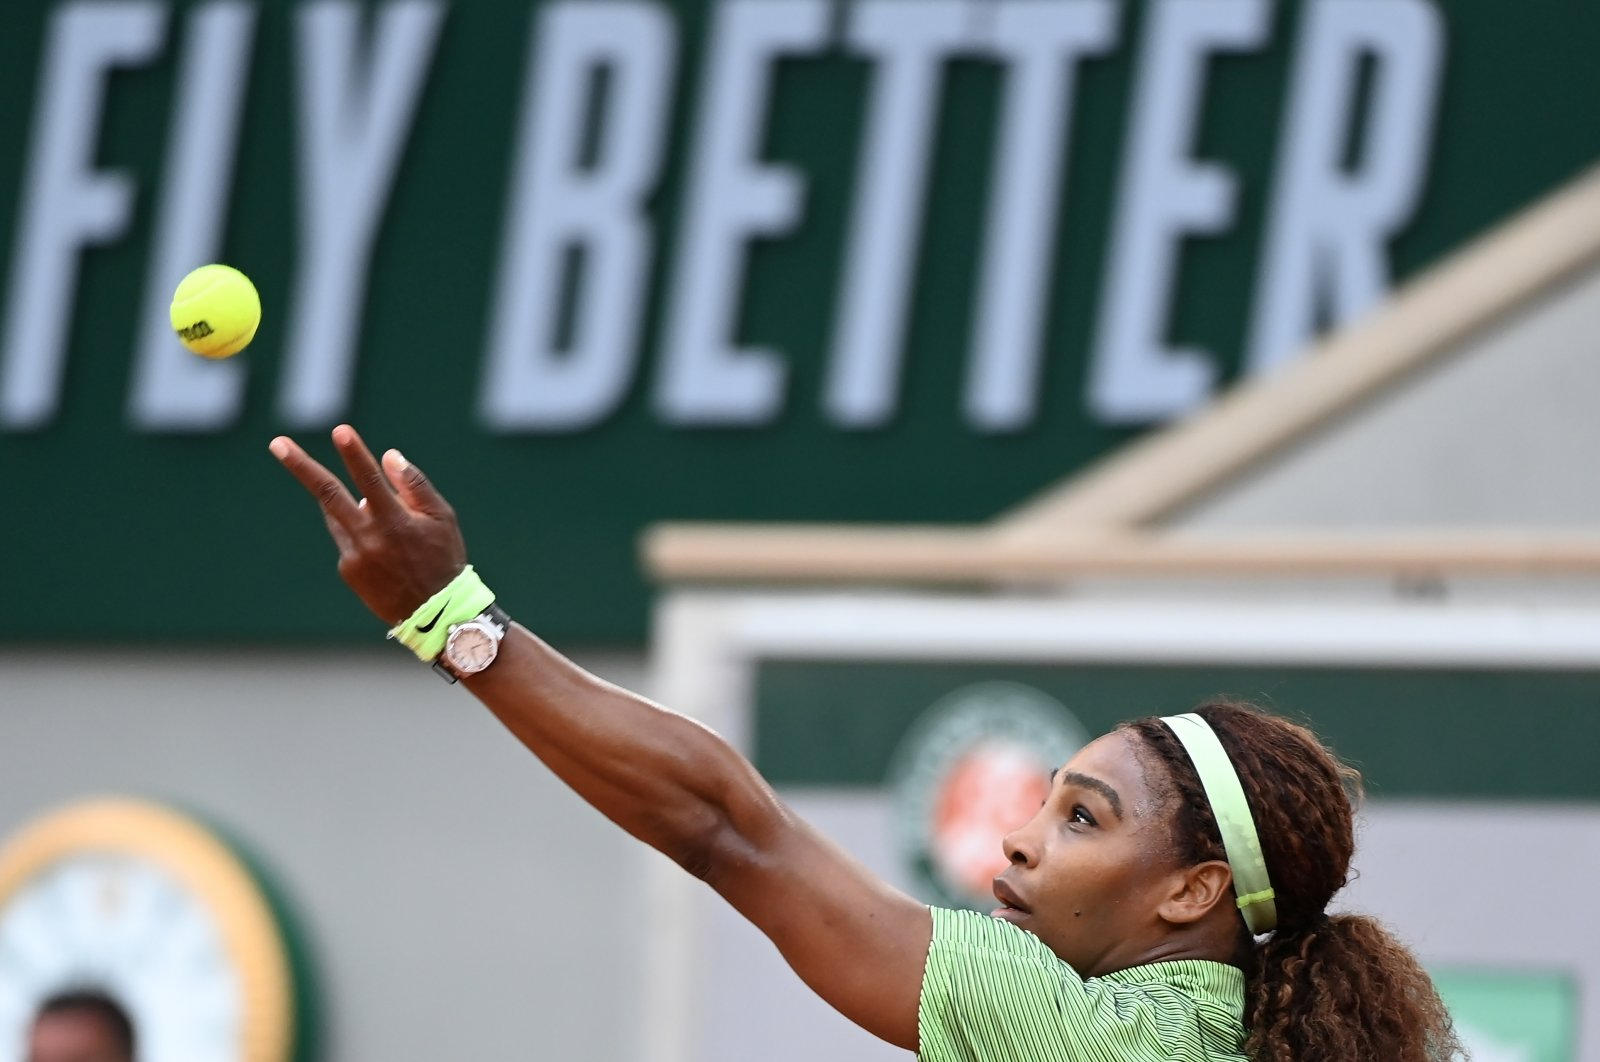 Serena Williams in action during the French Open second-round match against Mihaela Buzarnescu, Paris, France, June 2, 2021. (EPA Photo)